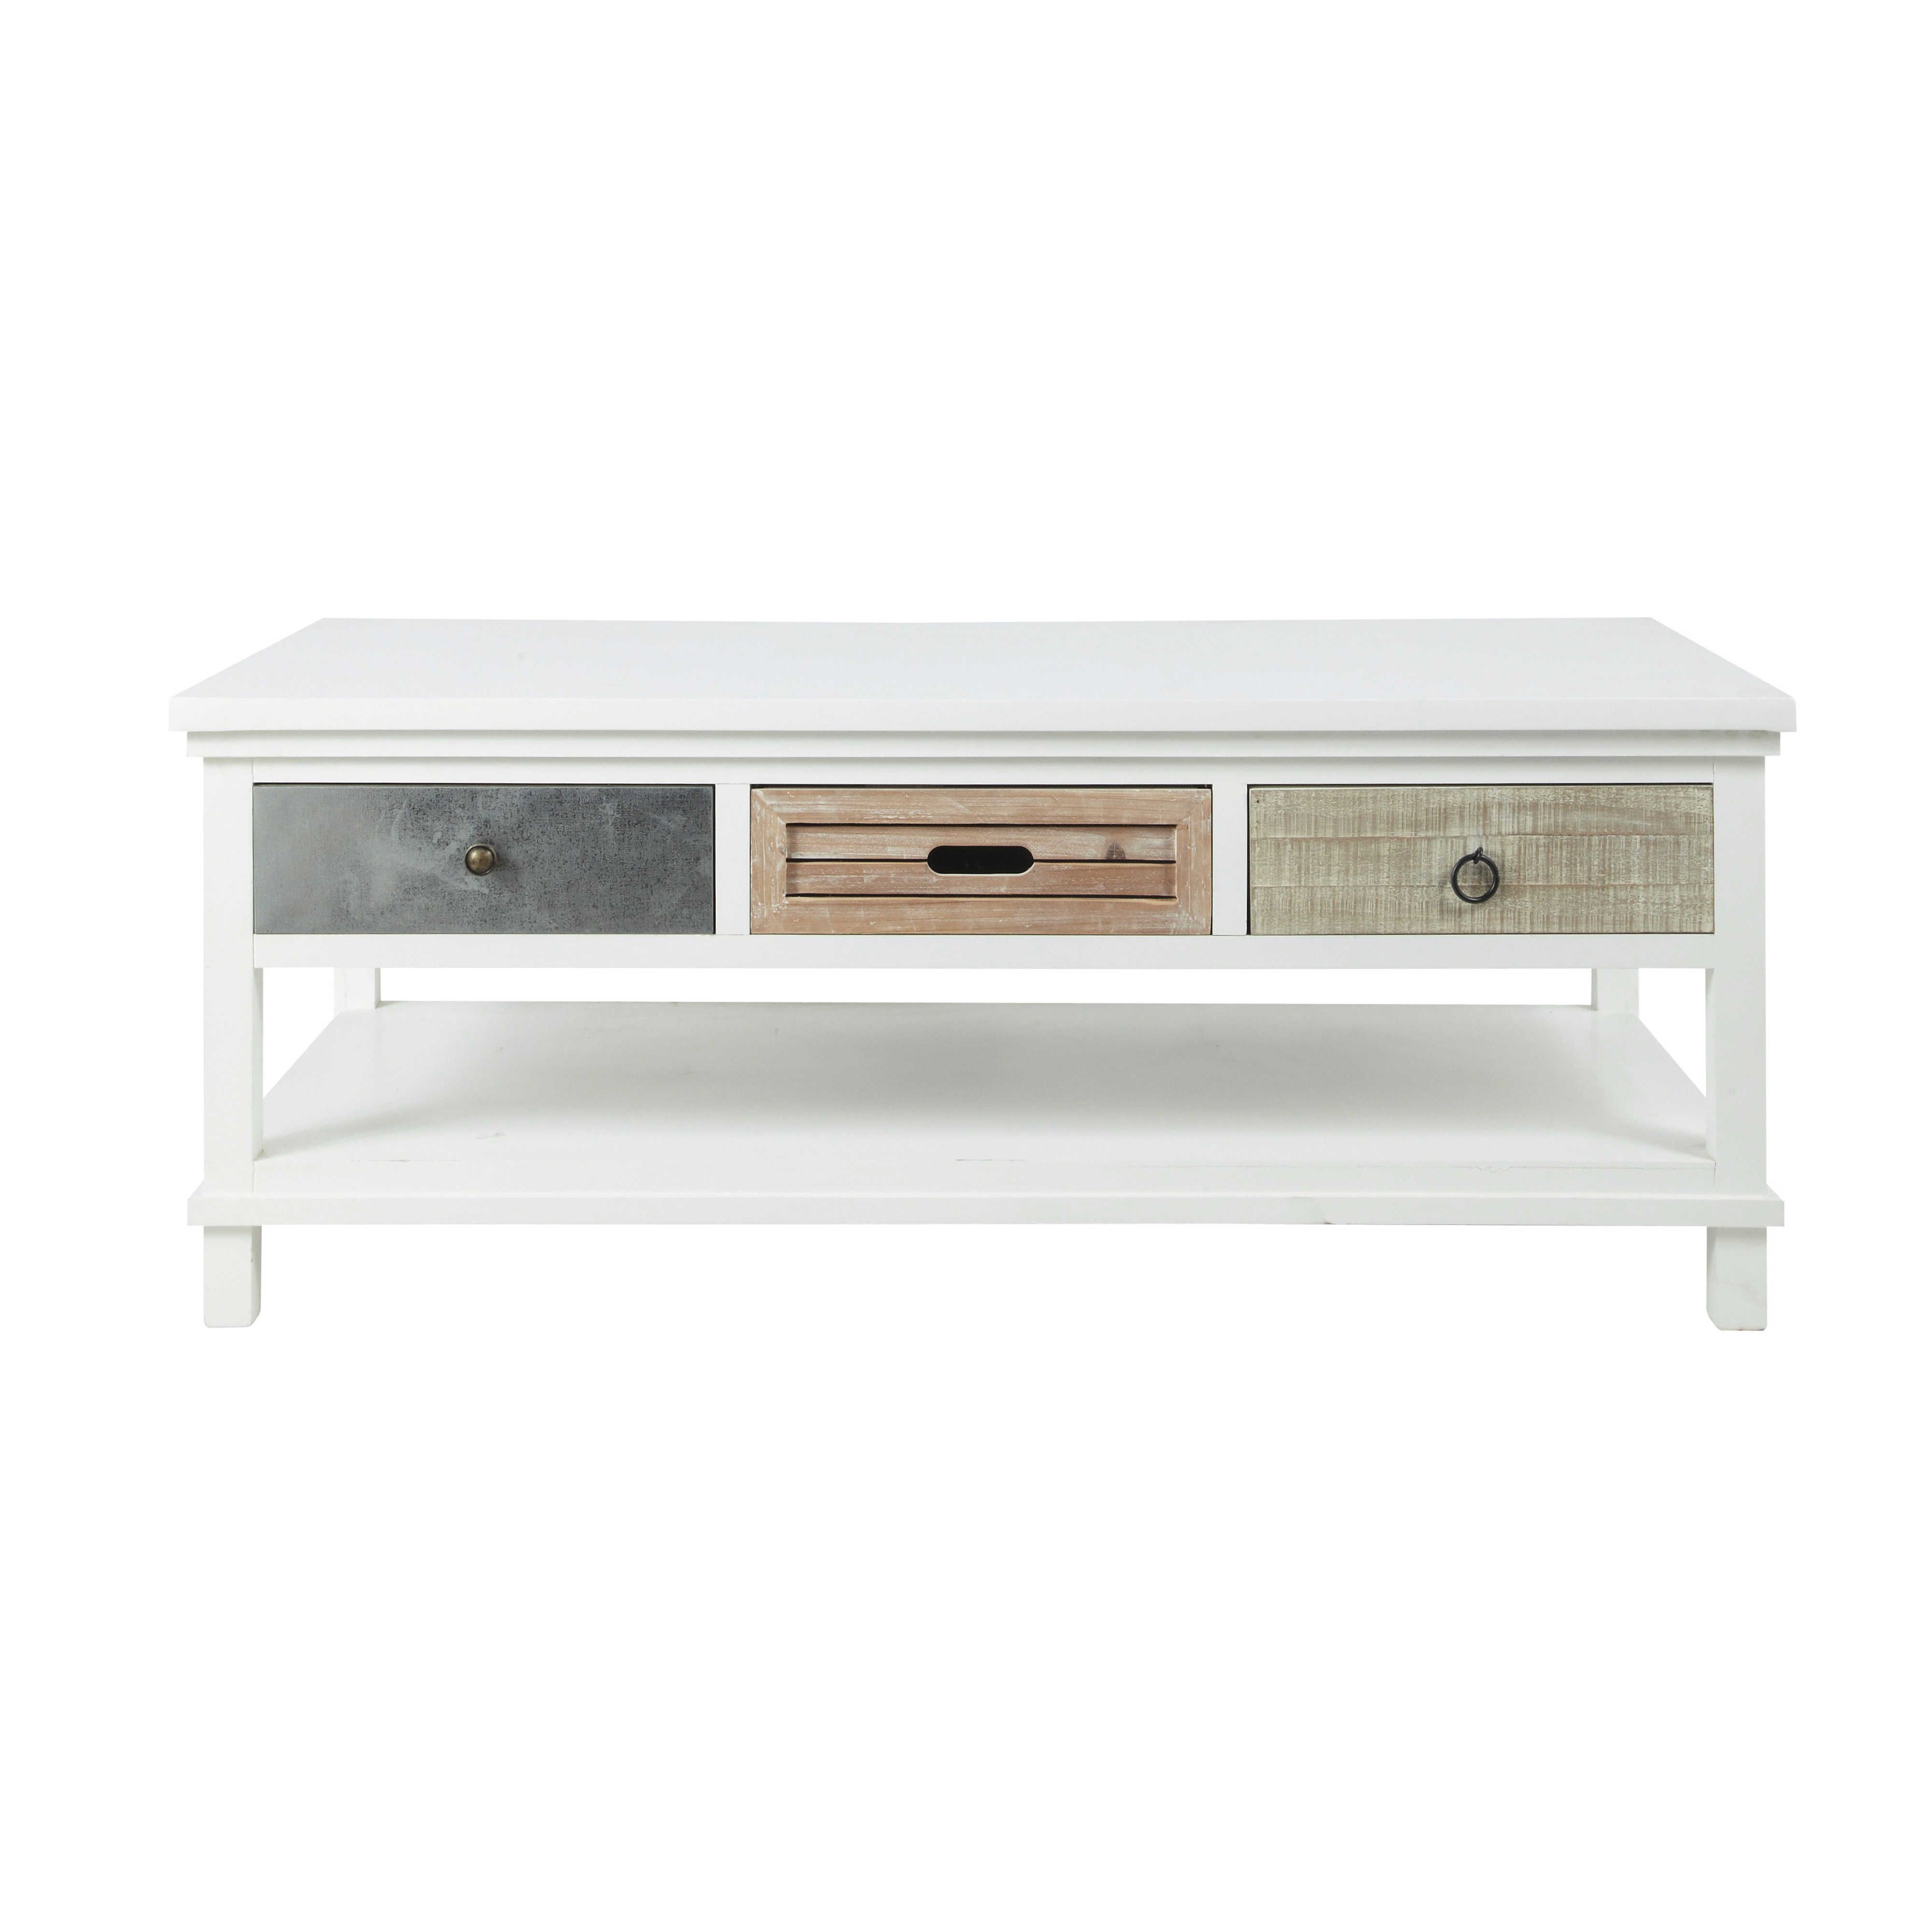 Table Basse Blanche Tables Basses Pinterest Table Basse Table